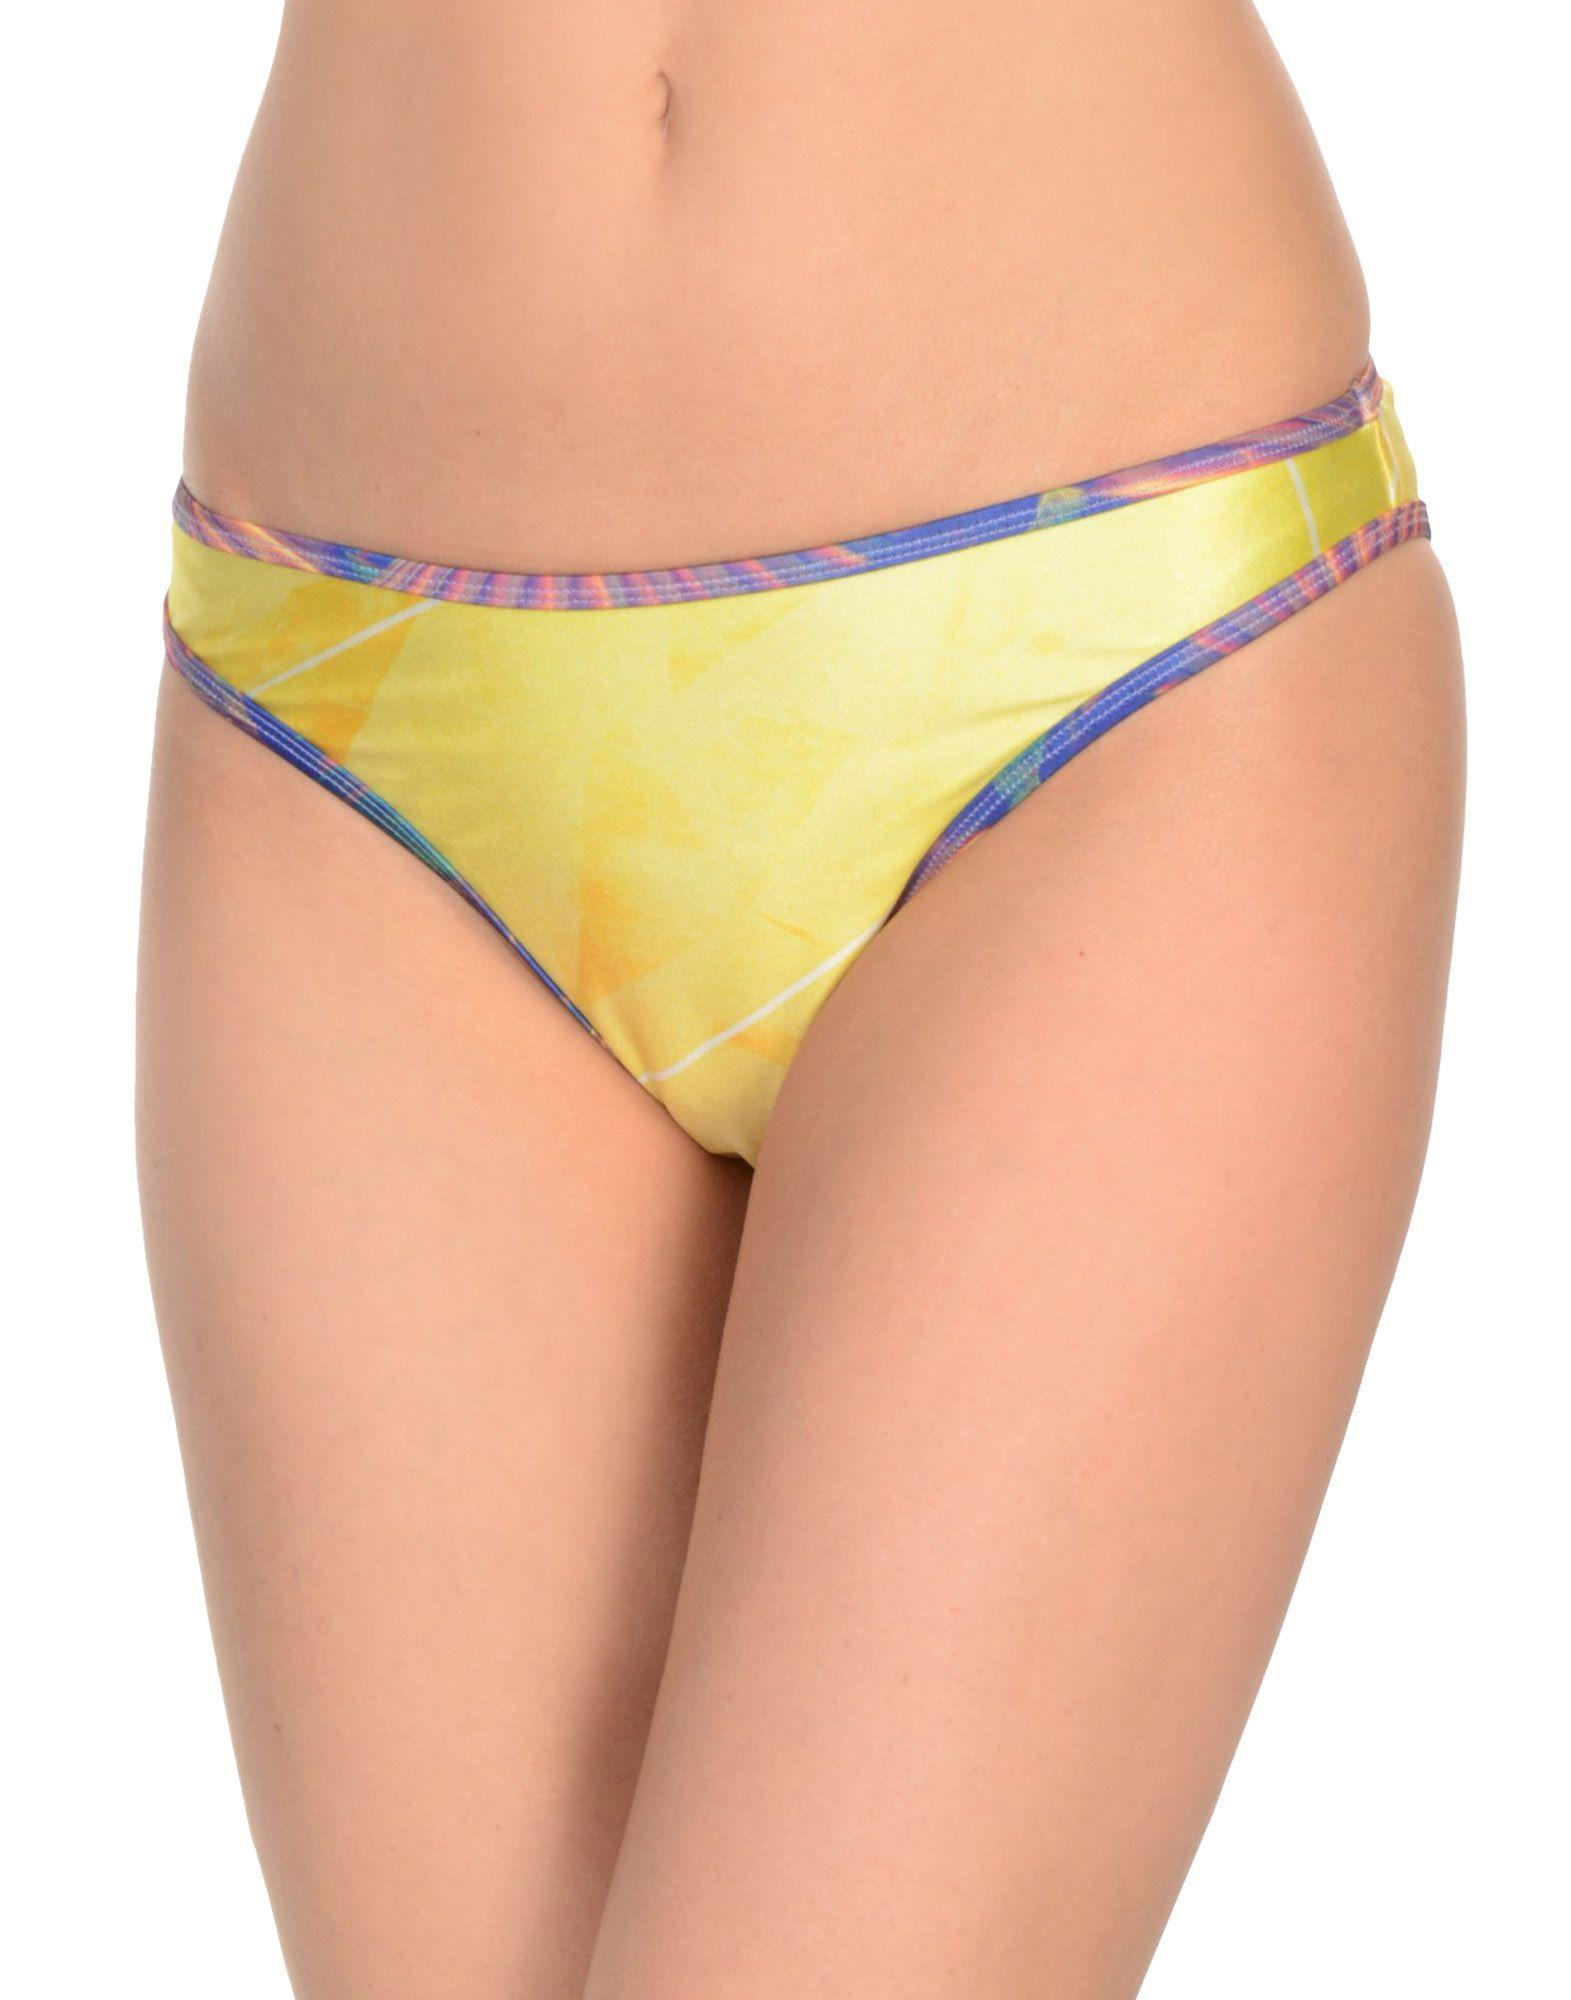 We Are Handsome Bikini In Yellow